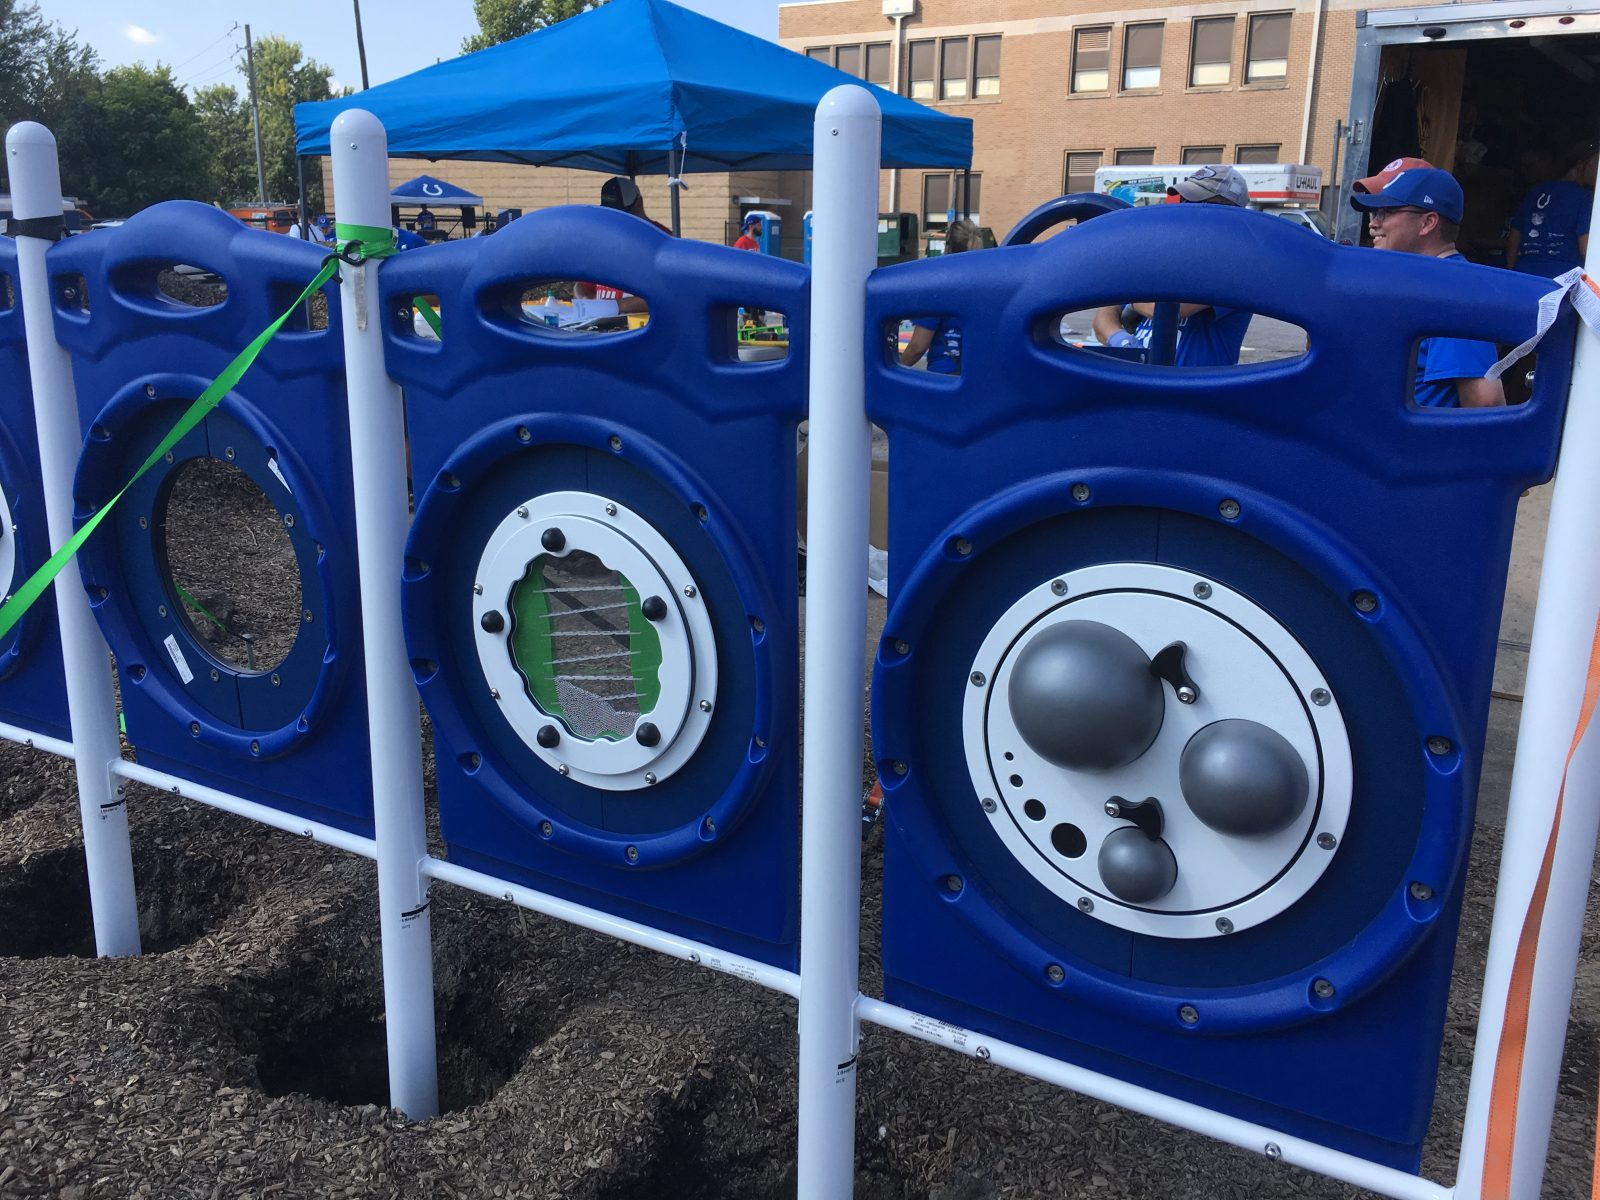 Indianapolis Colts Build Playground at Francis W. Parker School 56 4